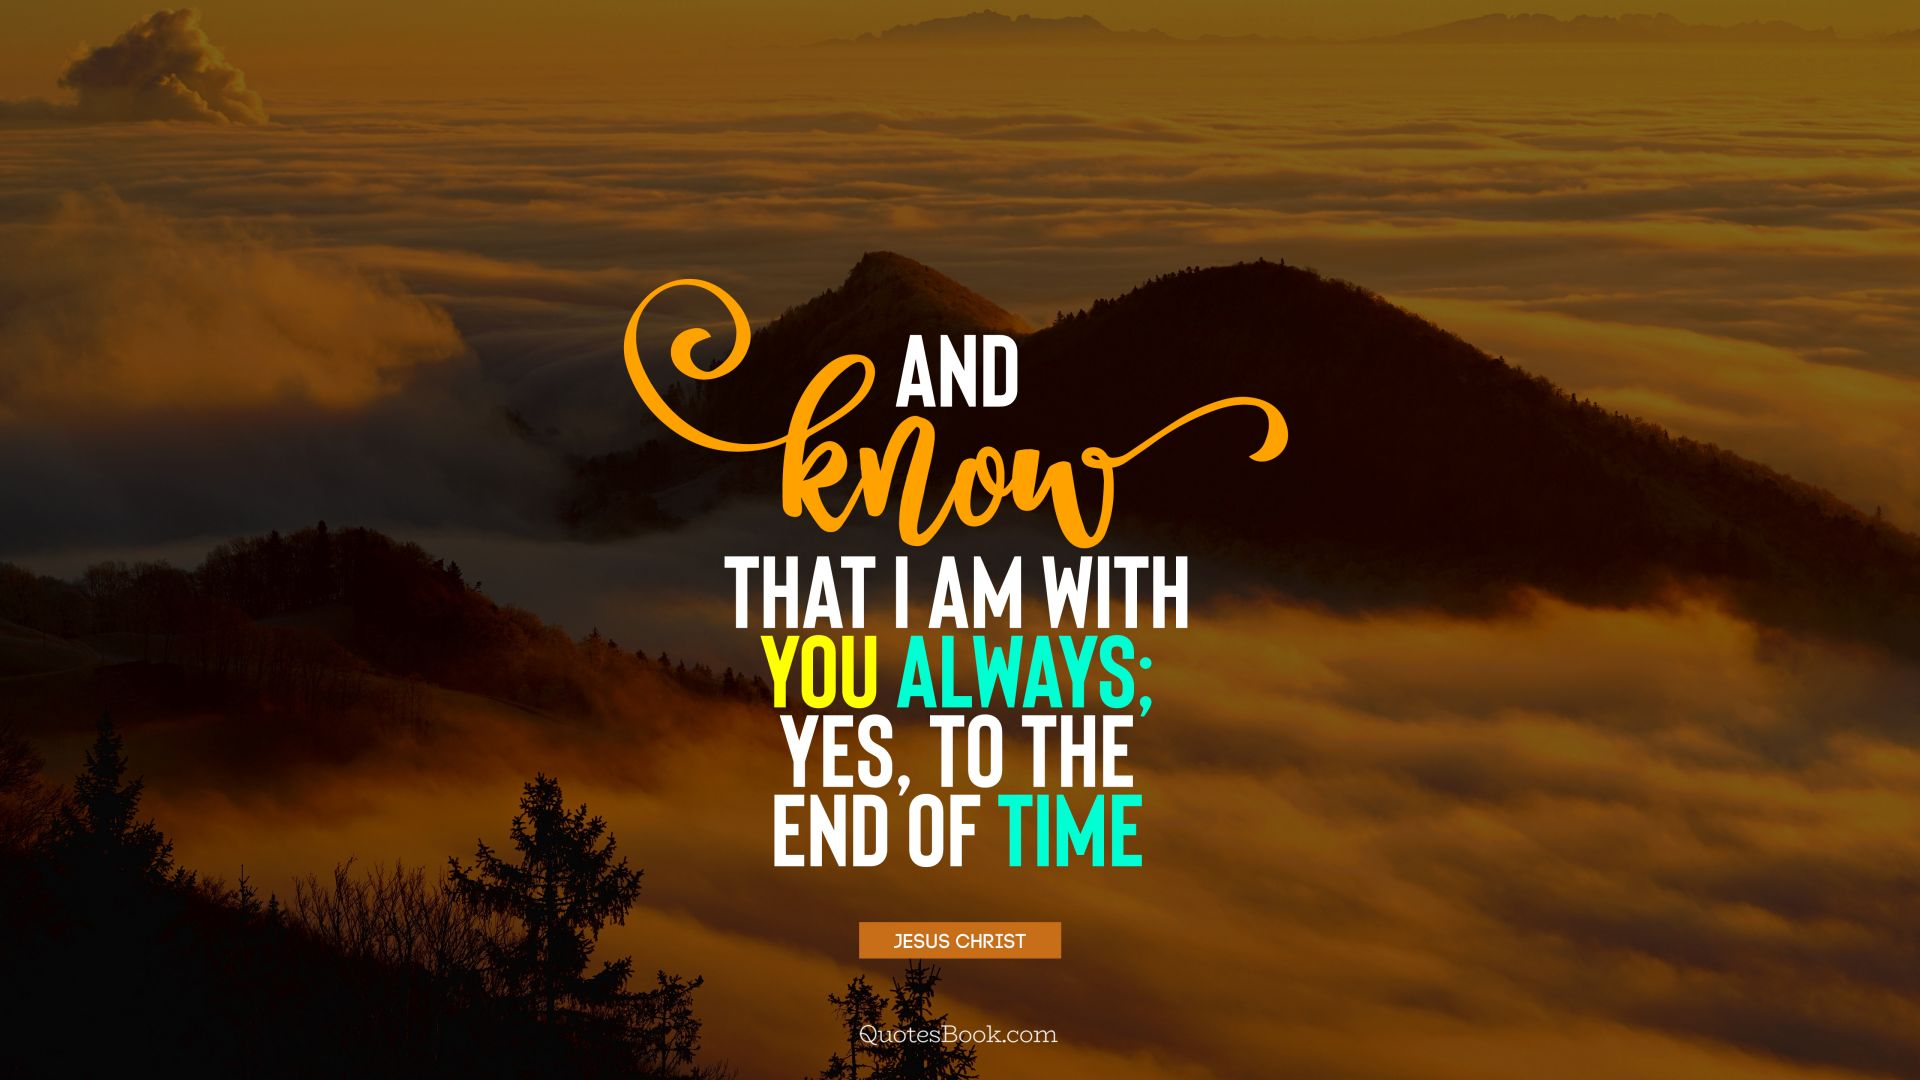 And Know That I Am With You Always Yes To The End Of Time Quote